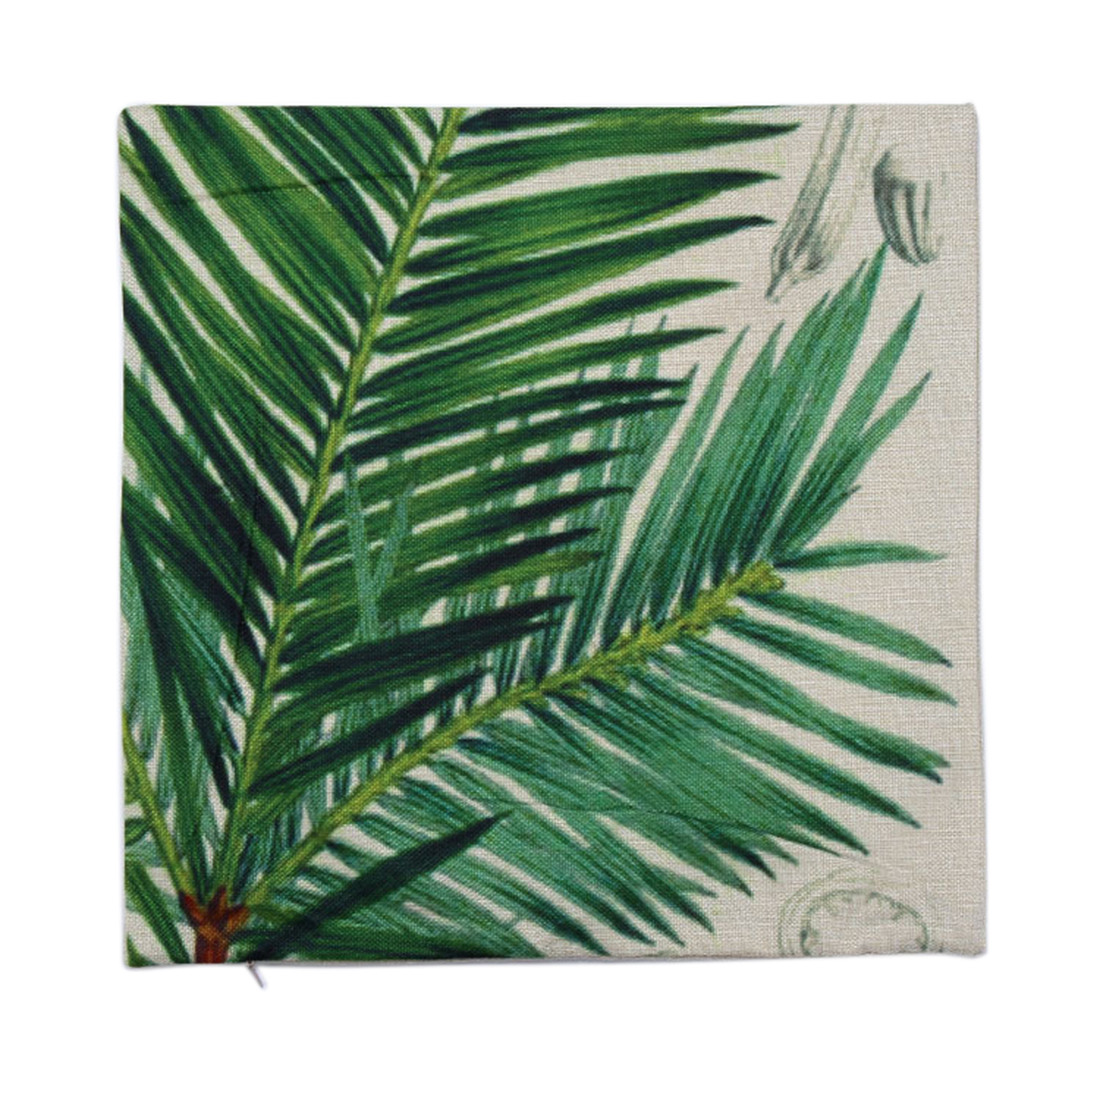 Piccocasa Sofa Sago Cycas Leaves Waist Throw Cushion Cover Pillow Case